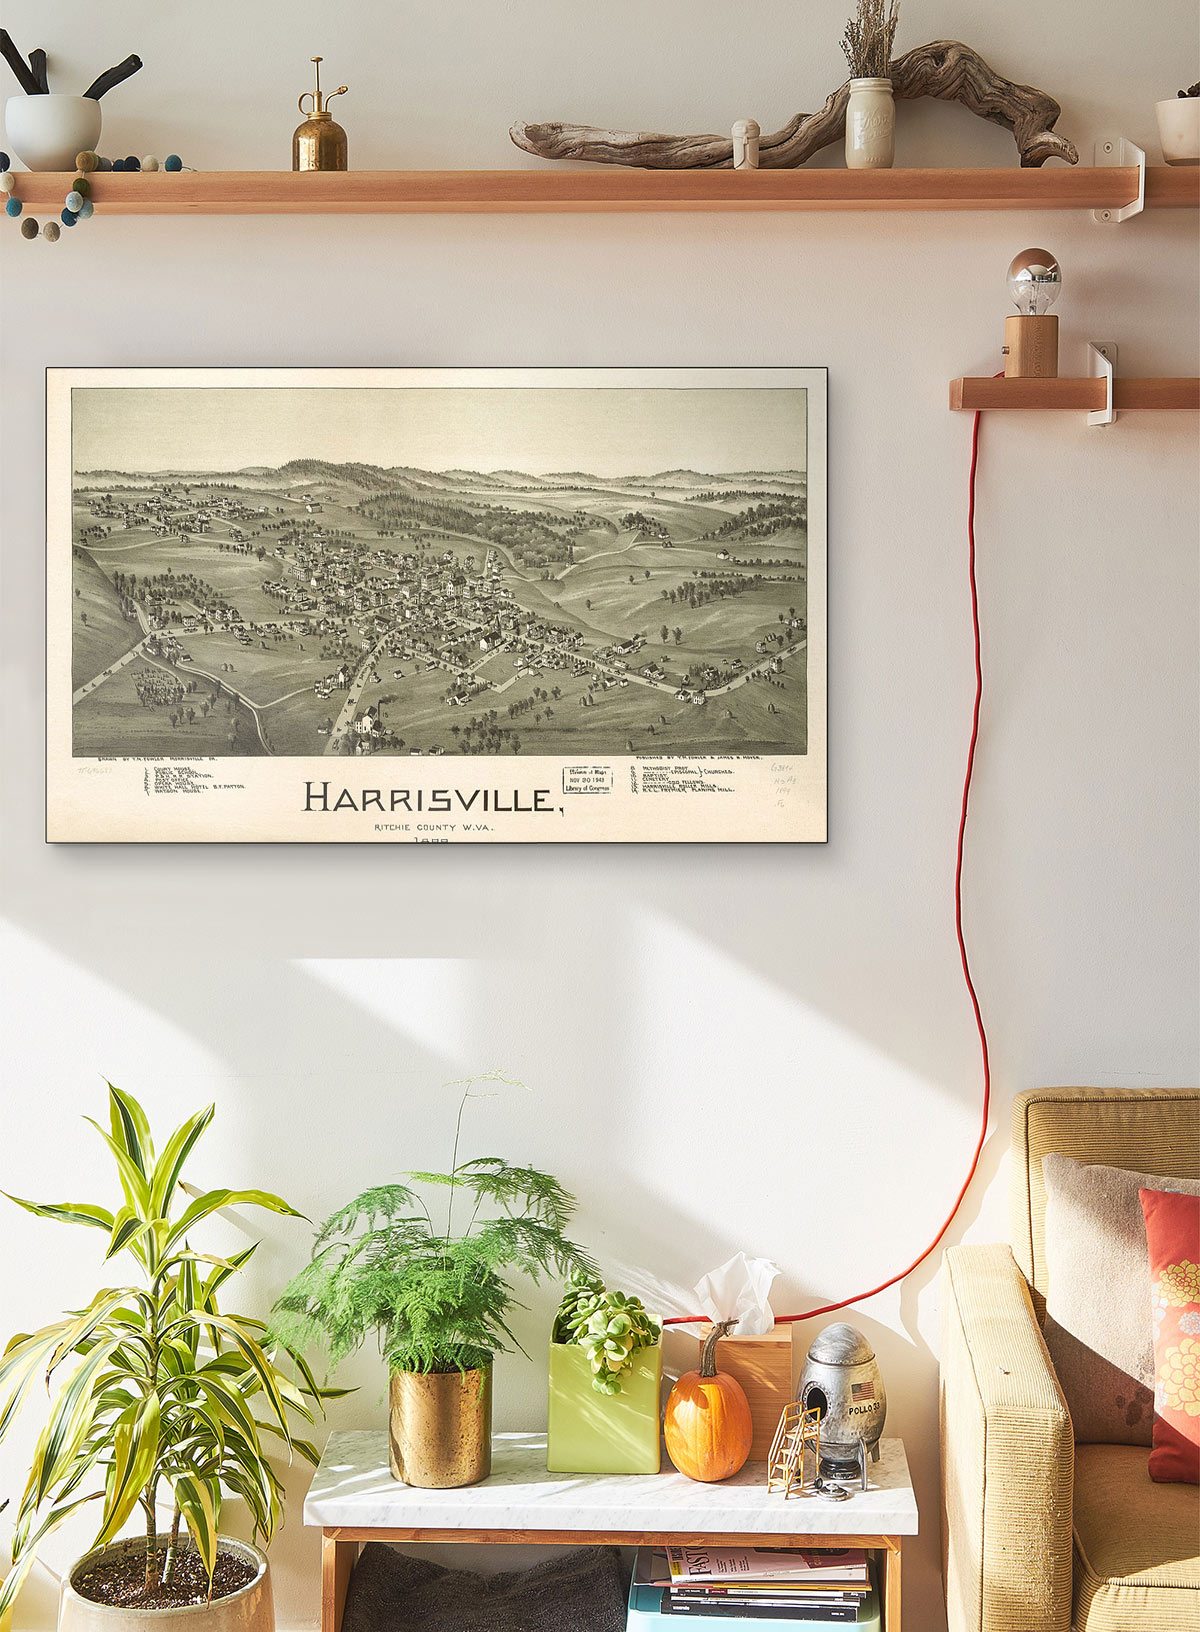 Harrisville Ritchie County W.va 1899 LARGE Vintage Map